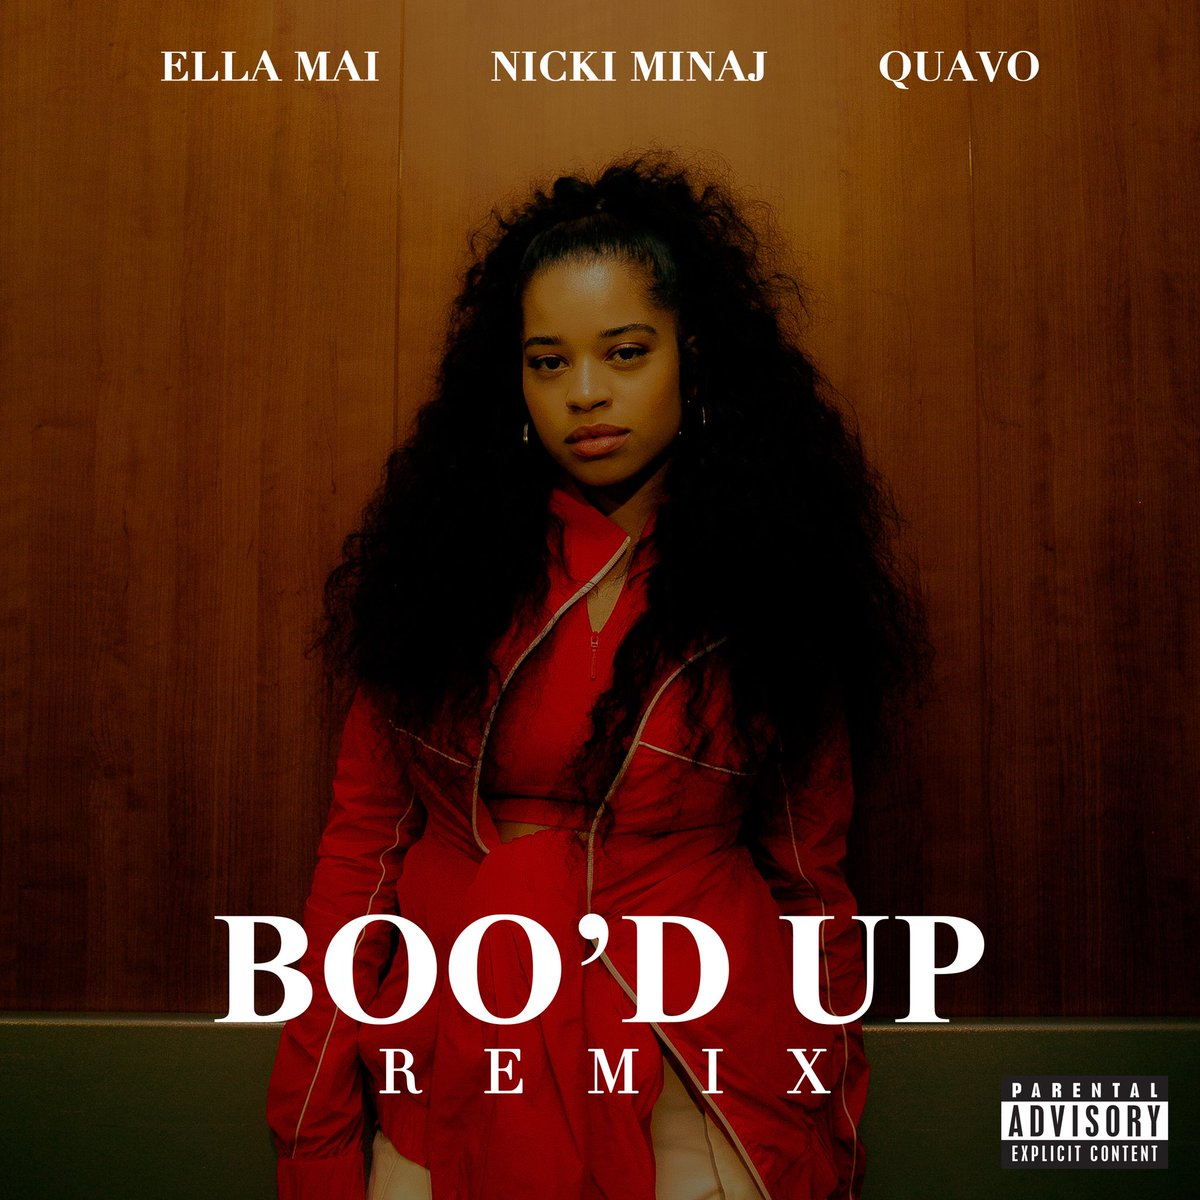 I heard this drops in like an hour. Don't hold me to it. #BoodUpREMIX https://t.co/NwEcGYKFvE